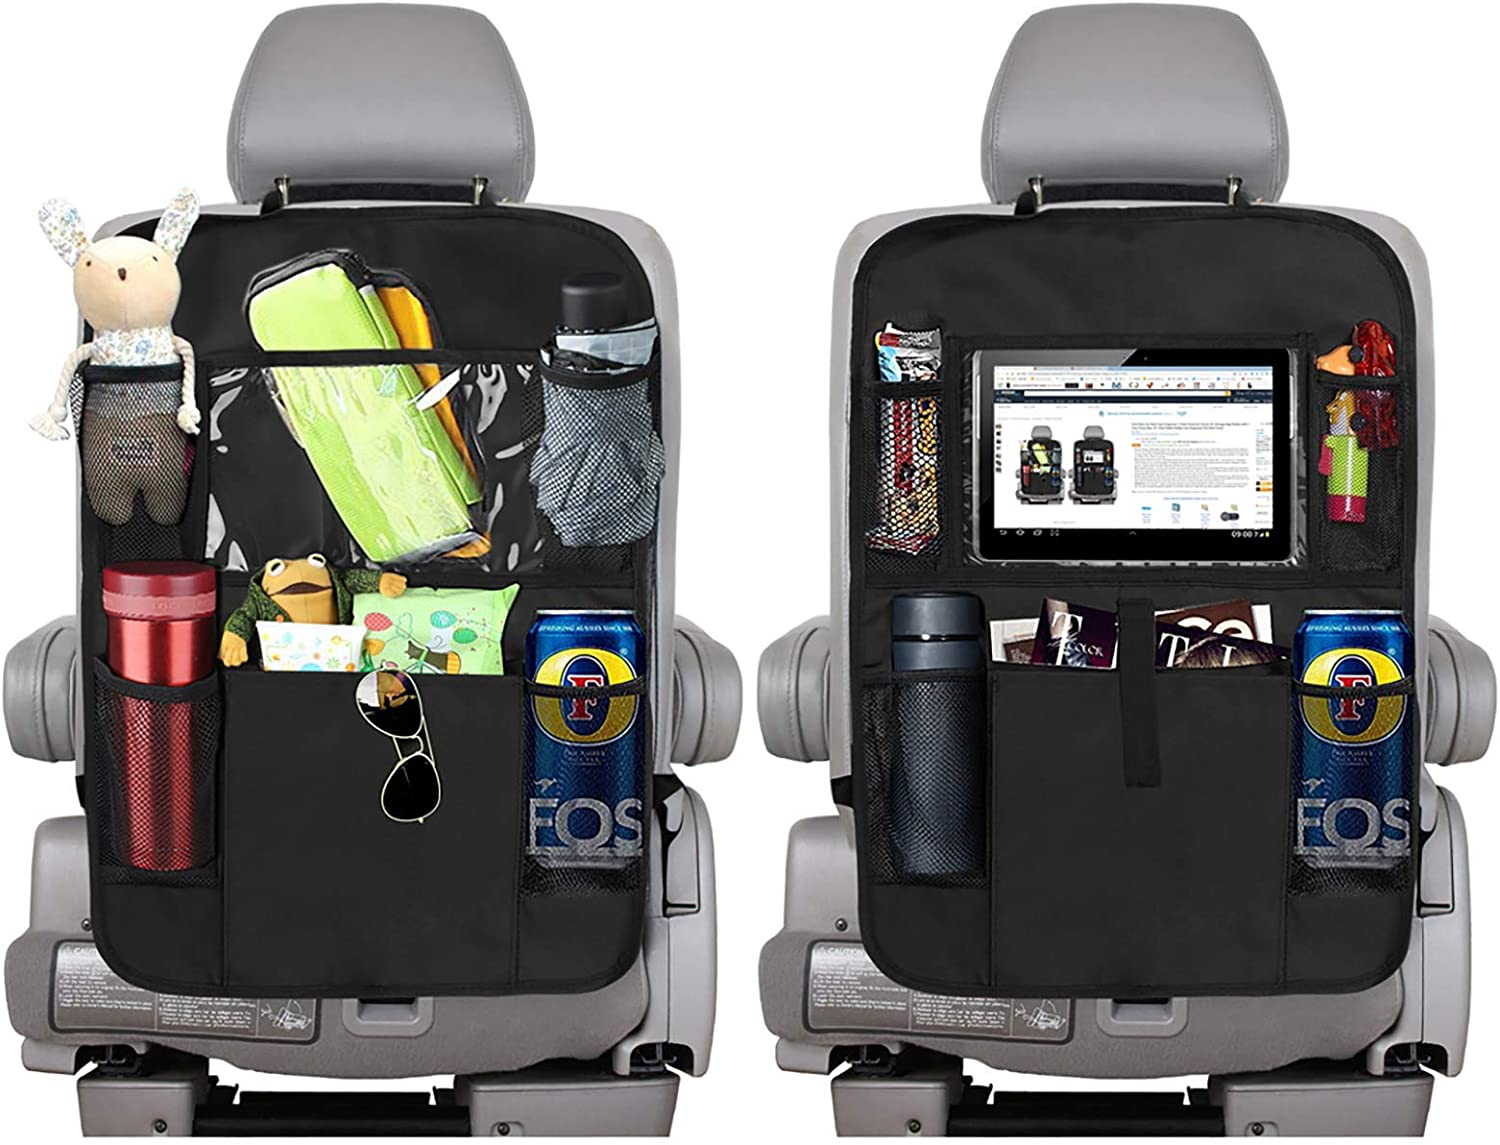 Back Seat Protector Kick Mats for Kids GREATEE Car Backseat Organizer and Storage Road Trip Essentials 6 Storage Pockets with Tissue Box 2PCS - Black